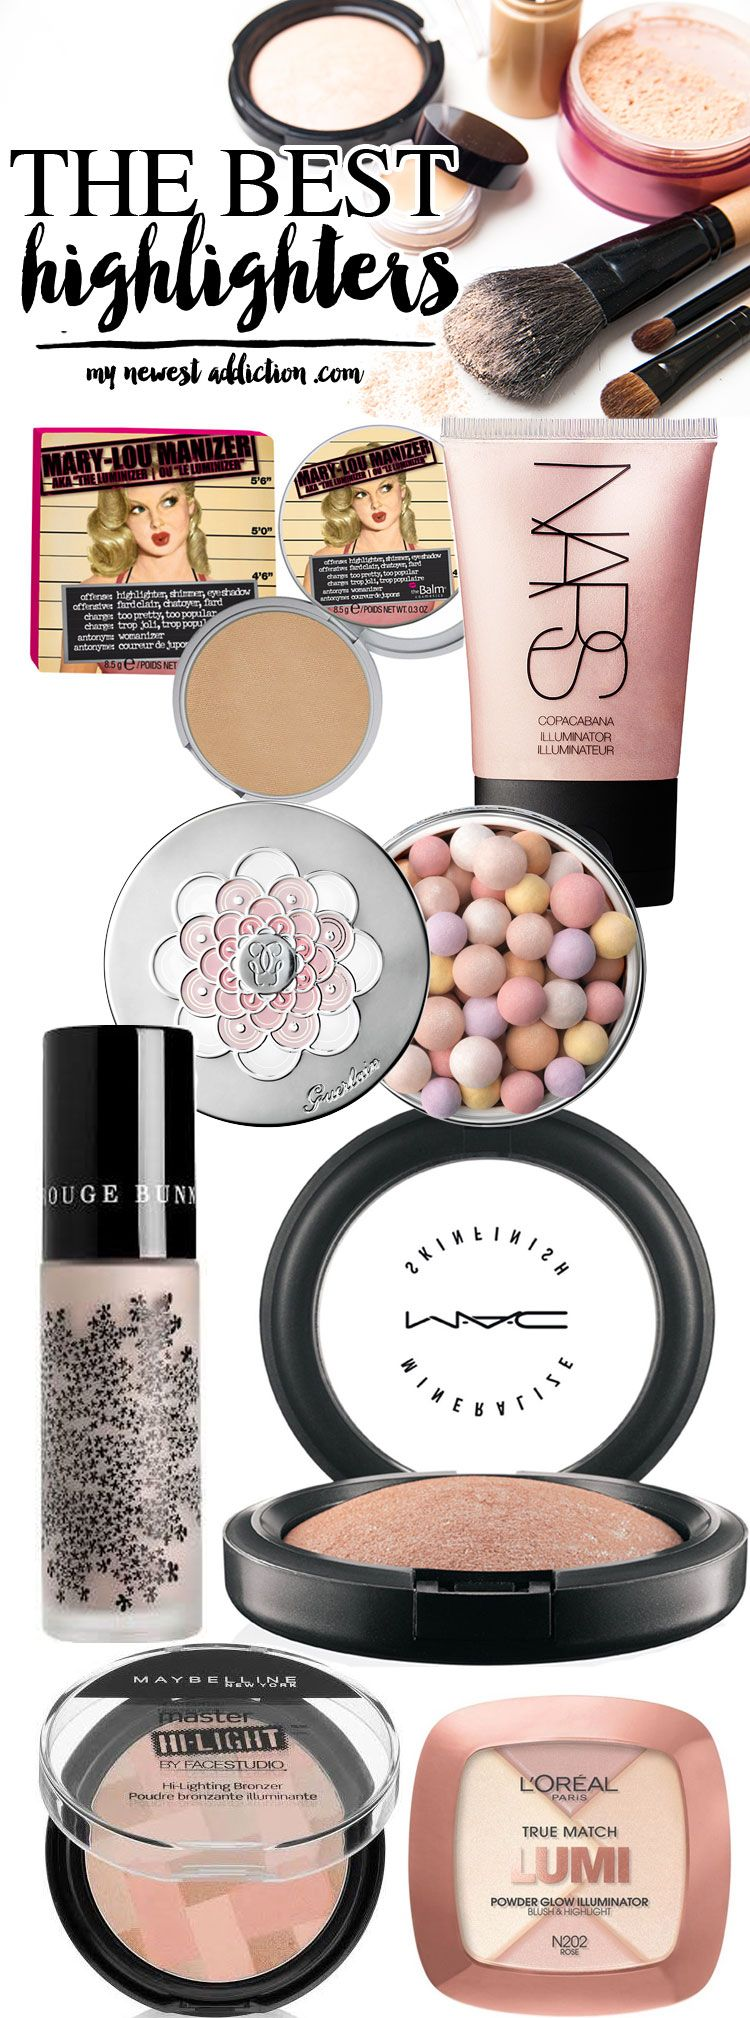 The Very Best Highlighters For Gleamy, GorgeousSkin forecast